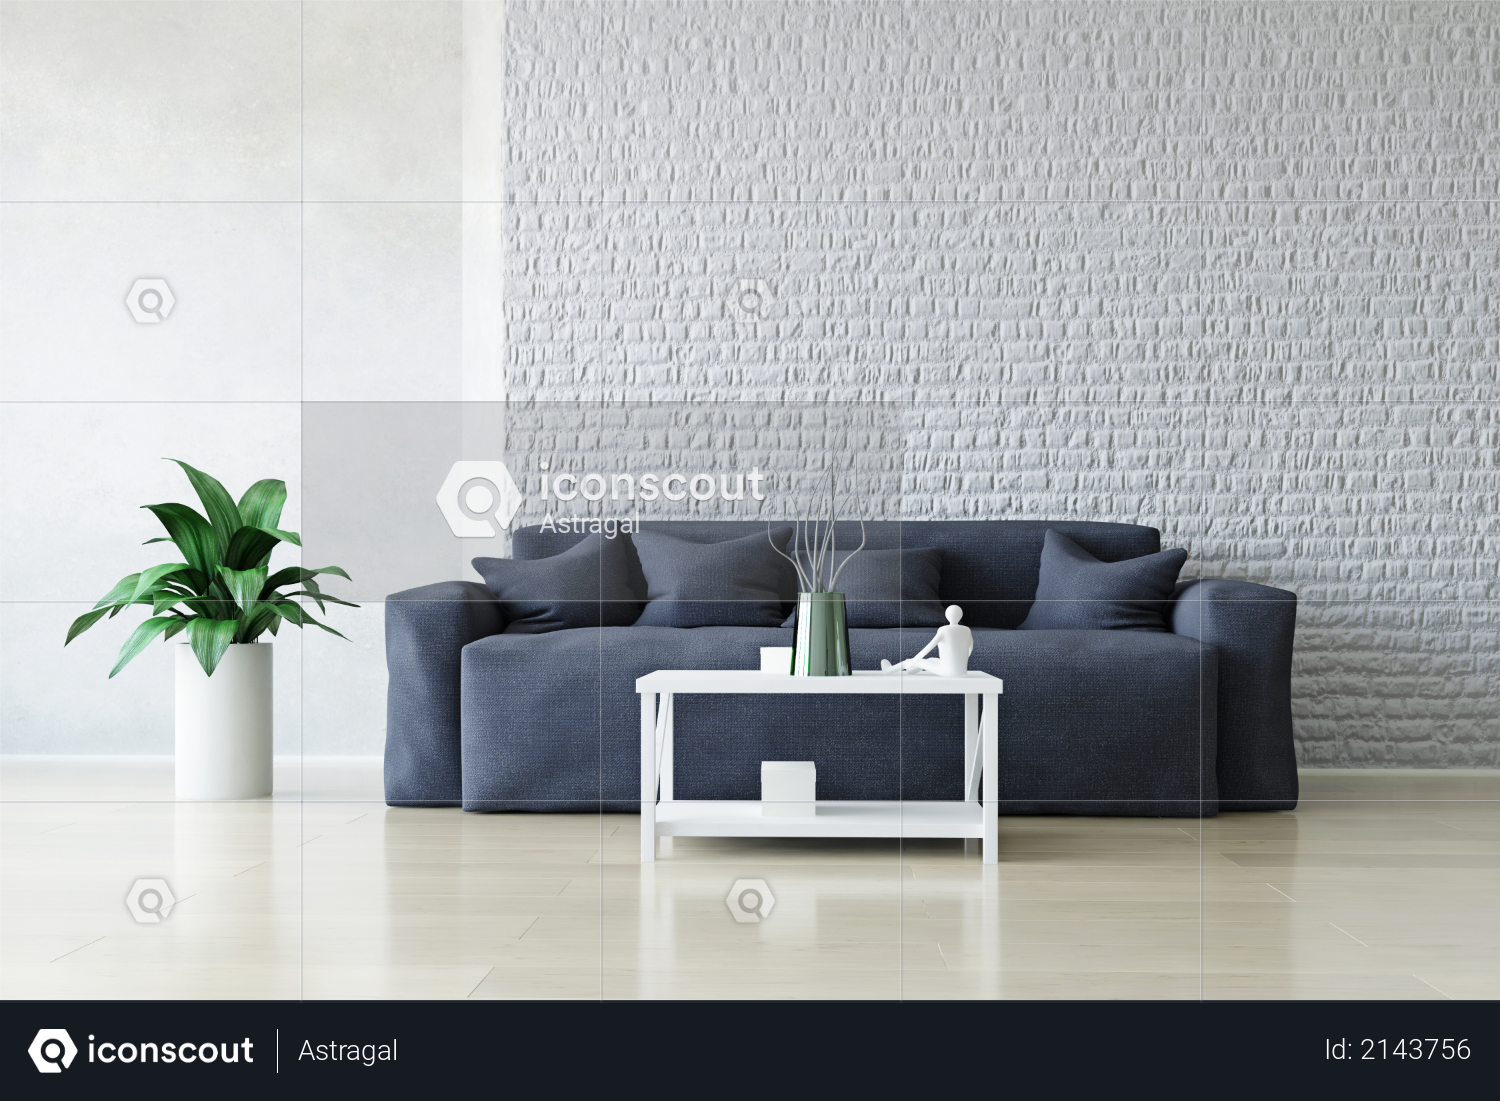 Modern Blue Sofa with Pillows and Table near the White Brick Wall, Green Plant on the Wooden Floor, Fashion Decor, Living Room Conceptual Style, 3D Rendering Trendy Art Graphic Design Photo